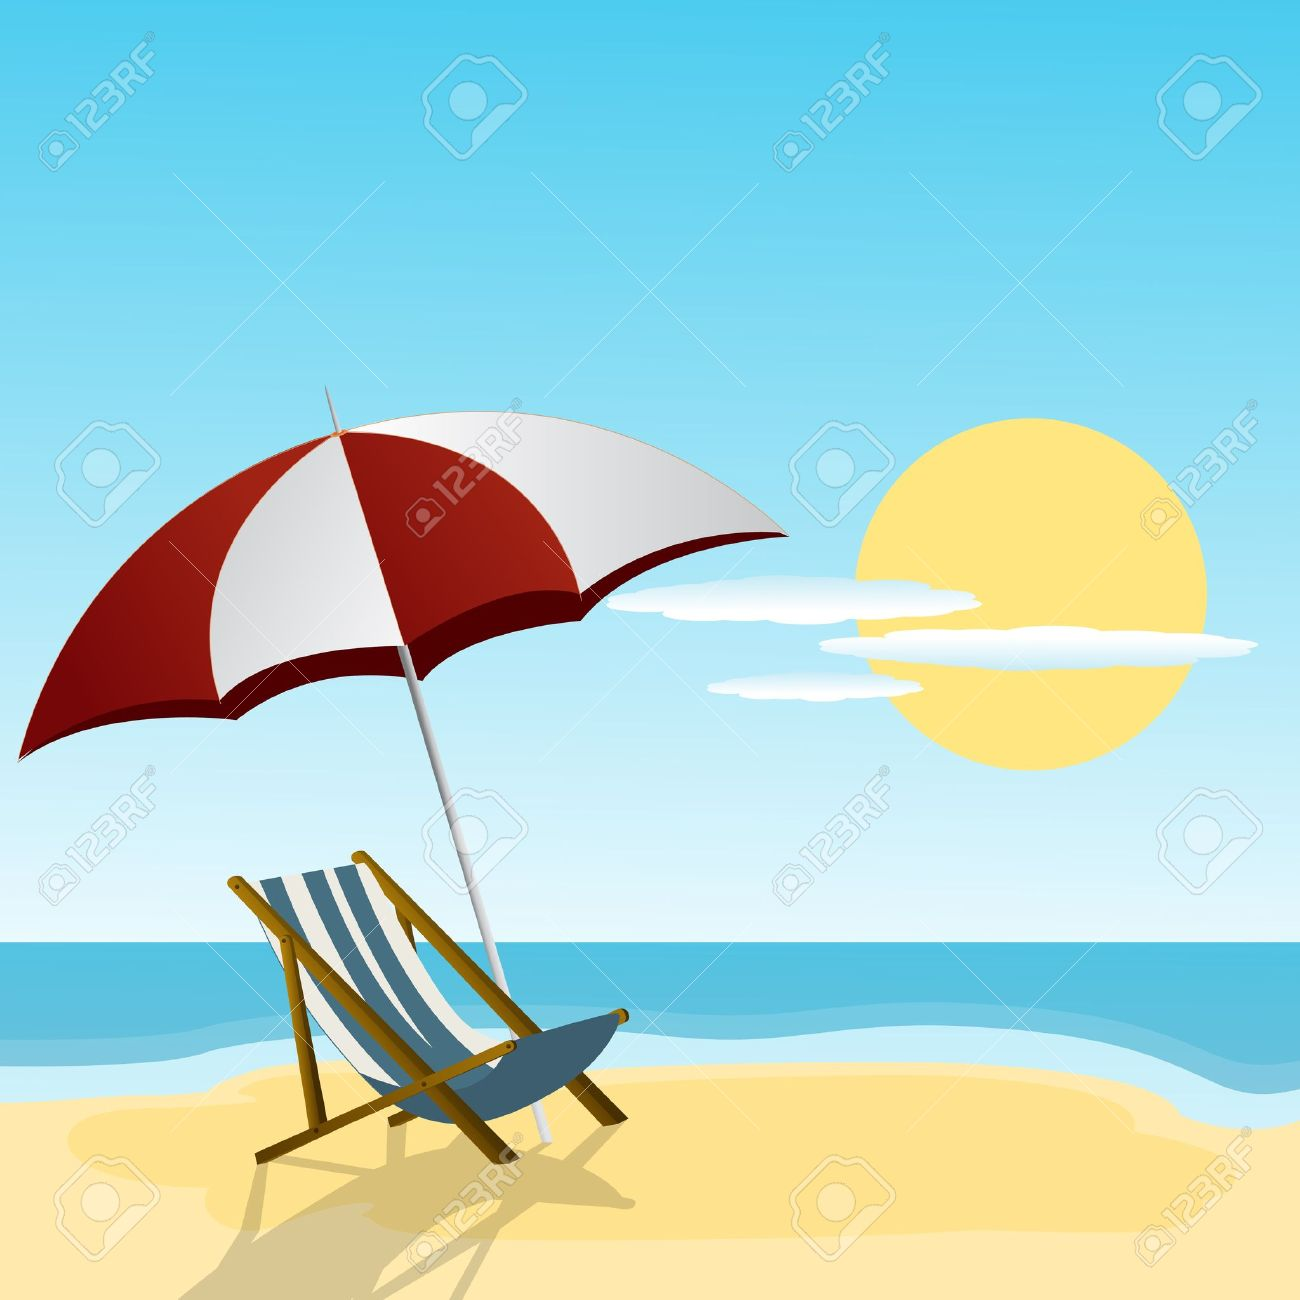 Chaise Lounge And Umbrella On The Beach Side Royalty Free Cliparts ...